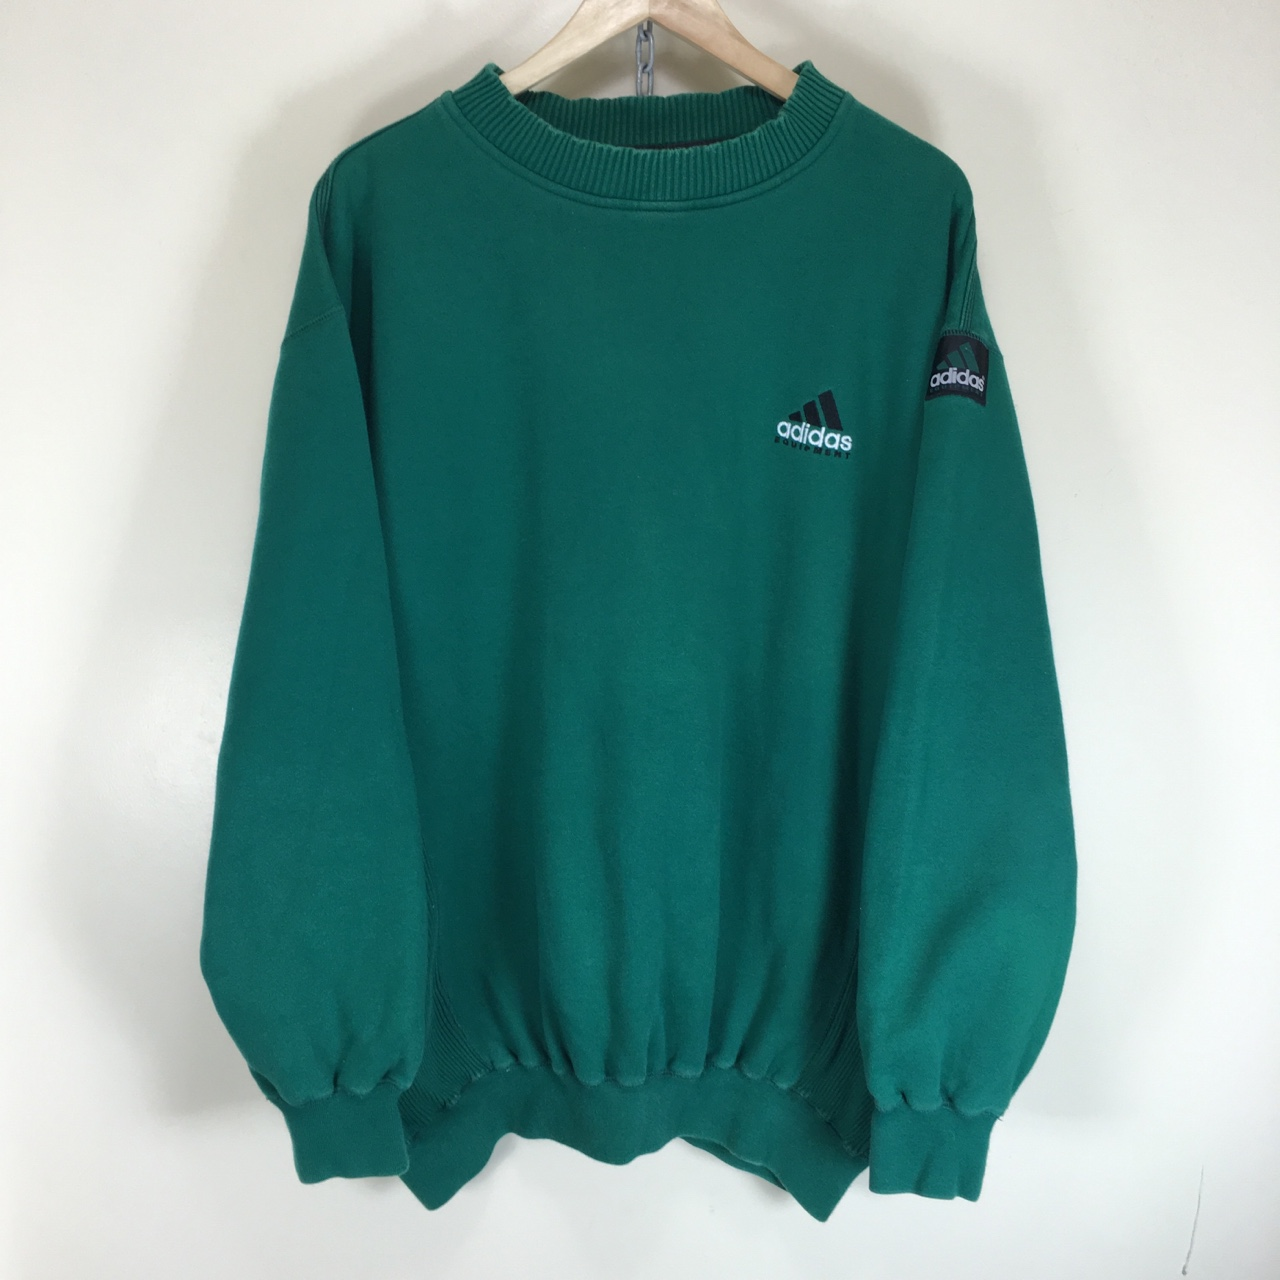 adidas equipment sweatshirt green